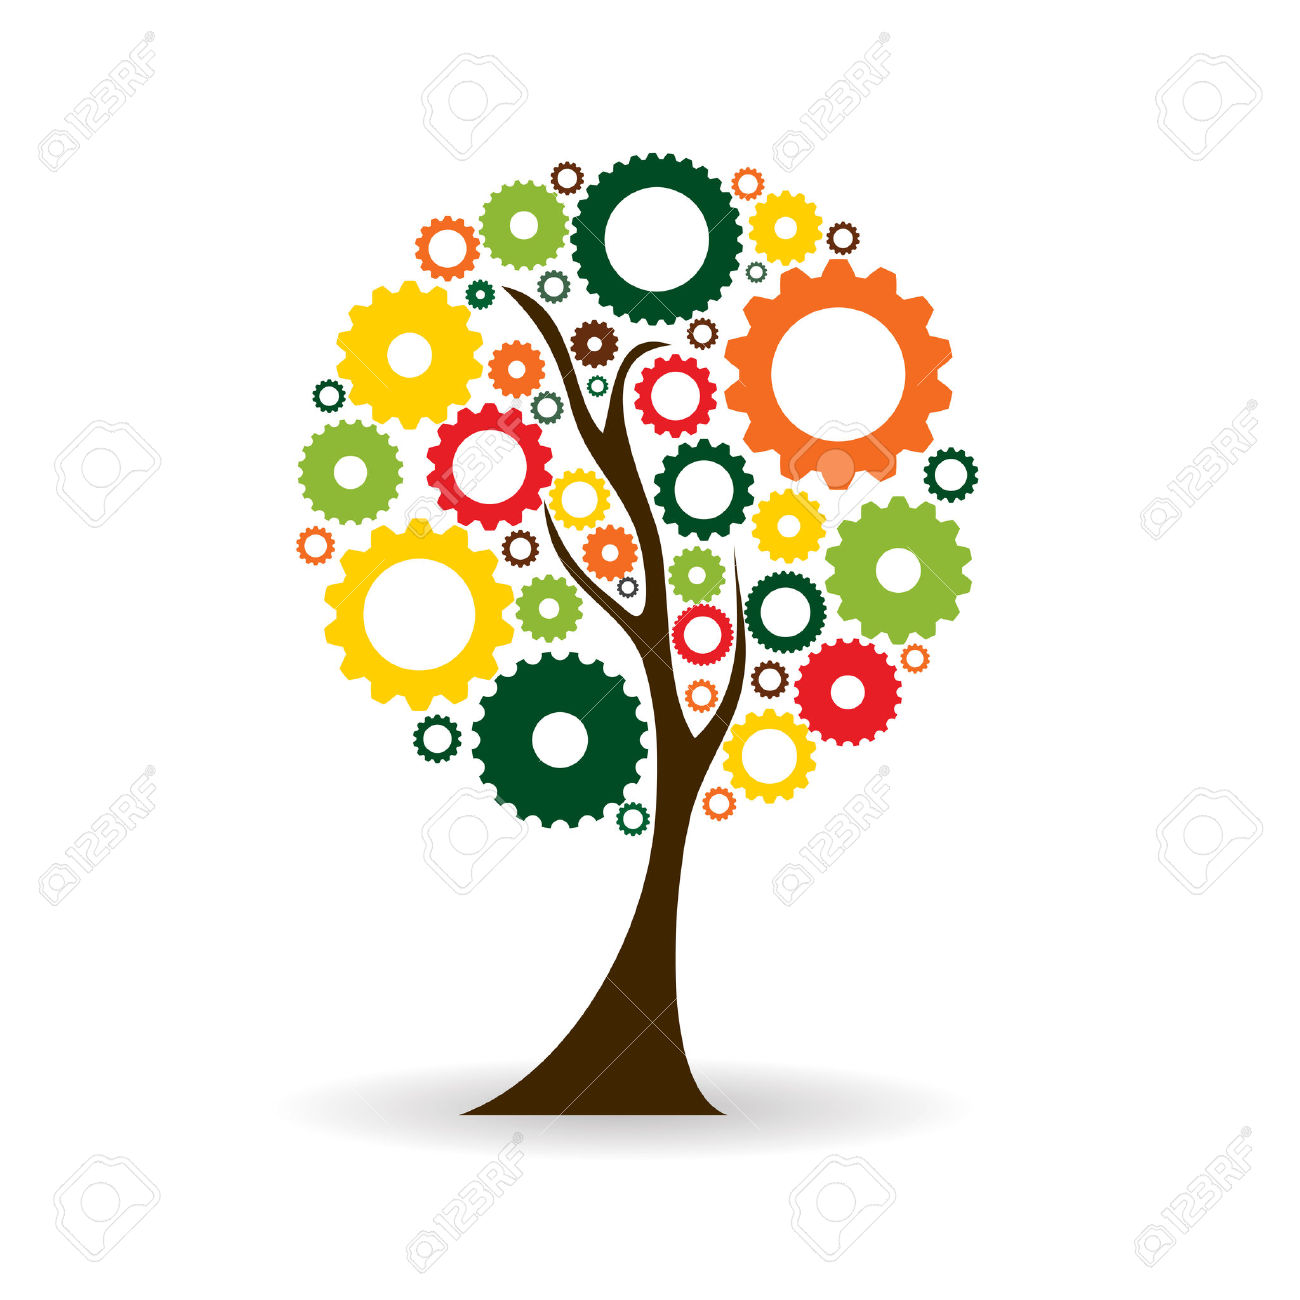 Gear Icon Tree Sign Vector Illustration EPS10 Royalty Free.